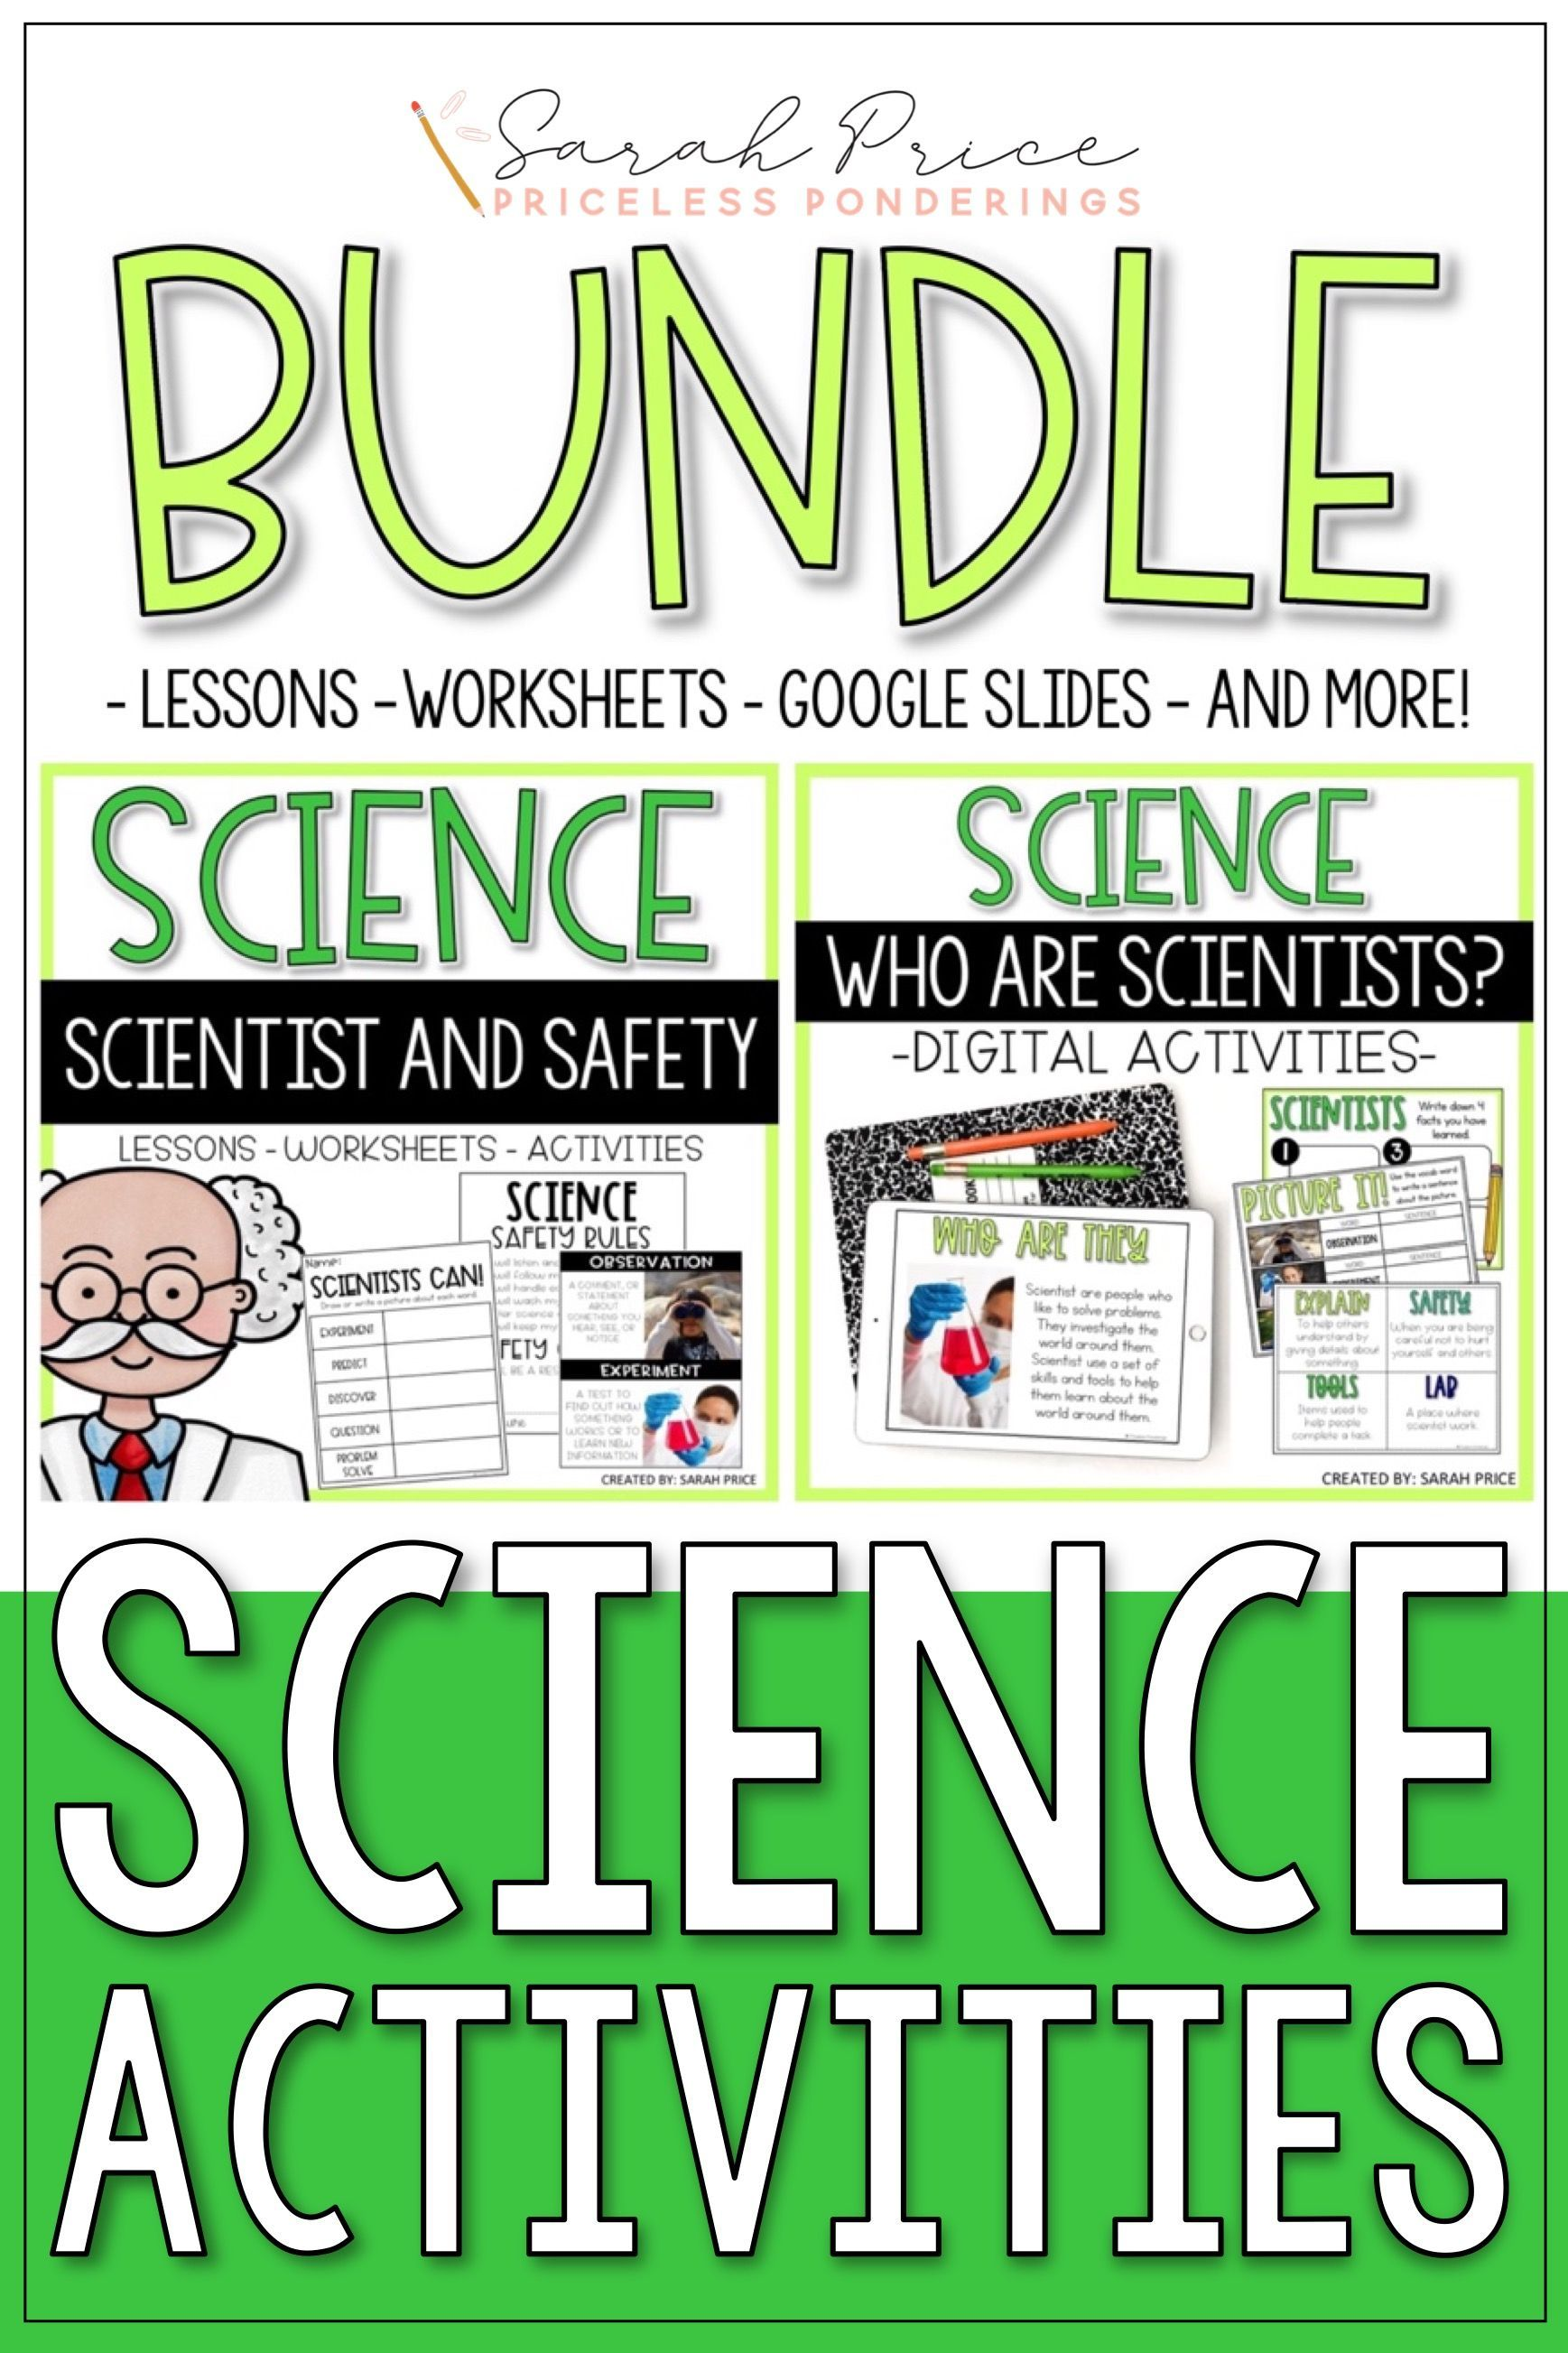 Scientists Safety And Tools Worksheets And Slides